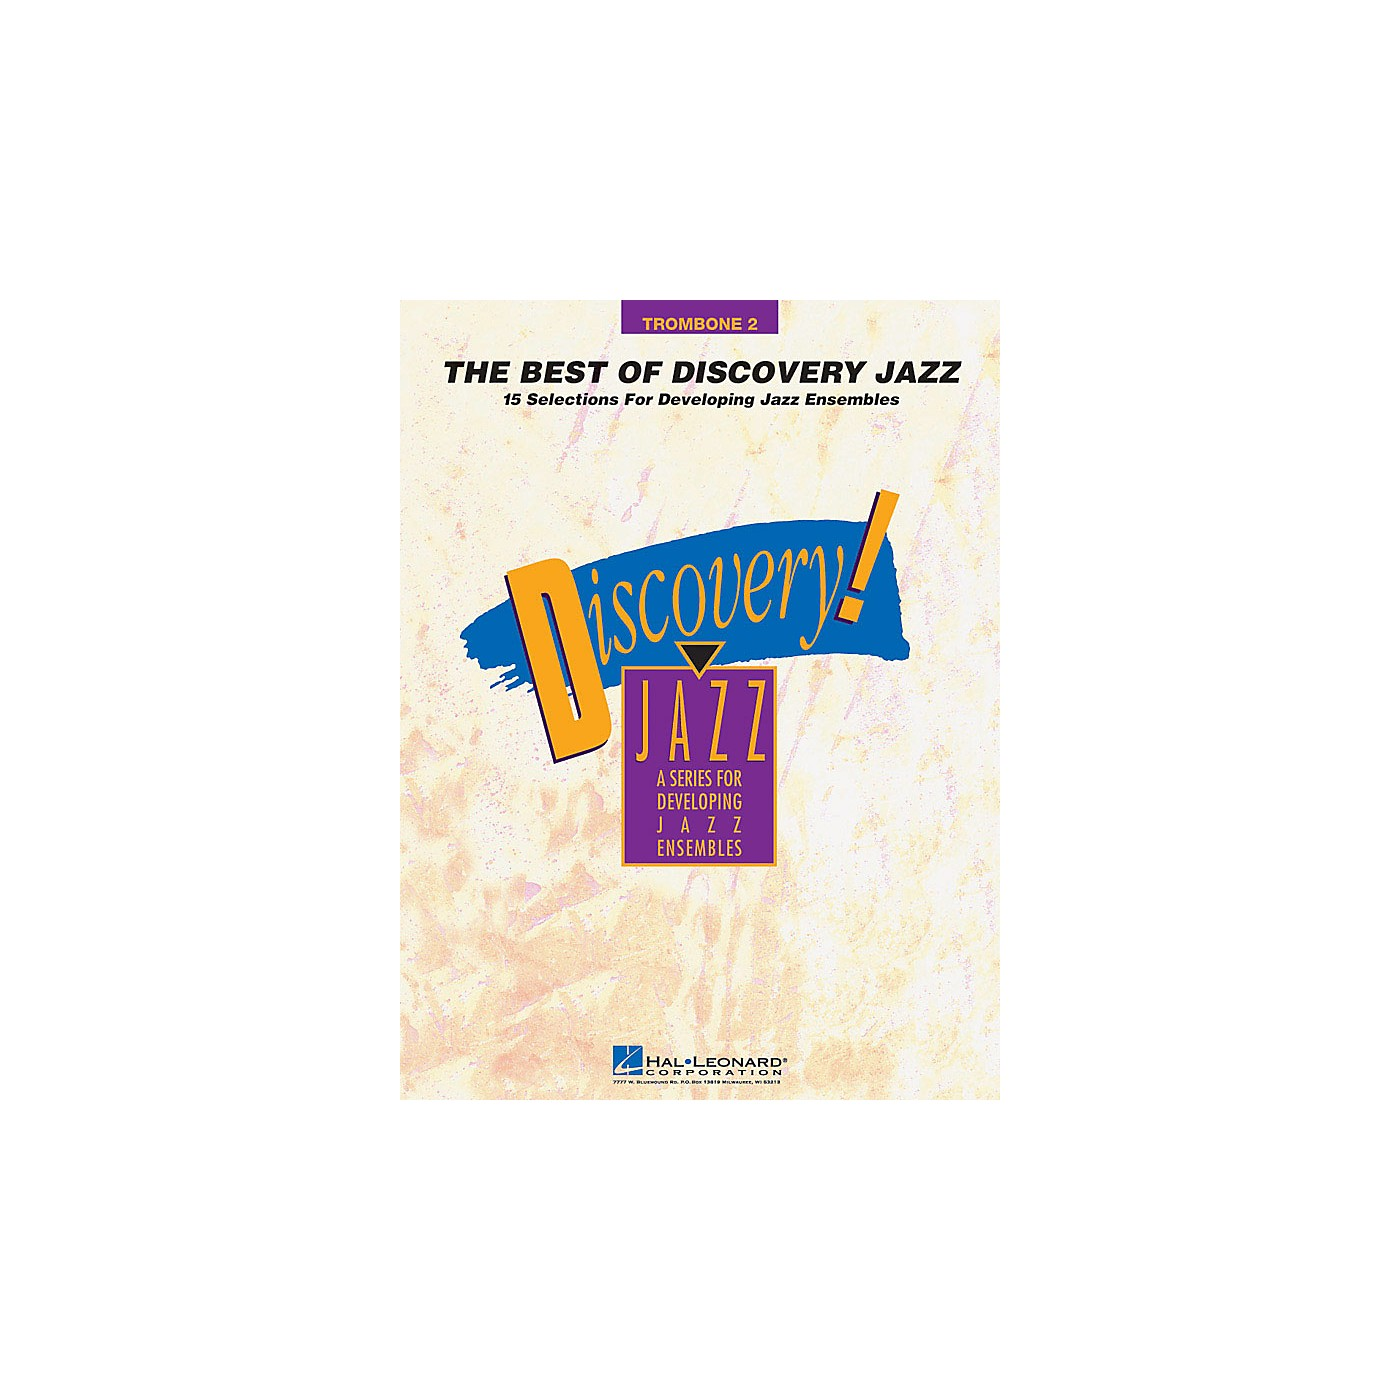 Hal Leonard The Best of Discovery Jazz (Trombone 2) Jazz Band Level 1-2 Composed by Various thumbnail